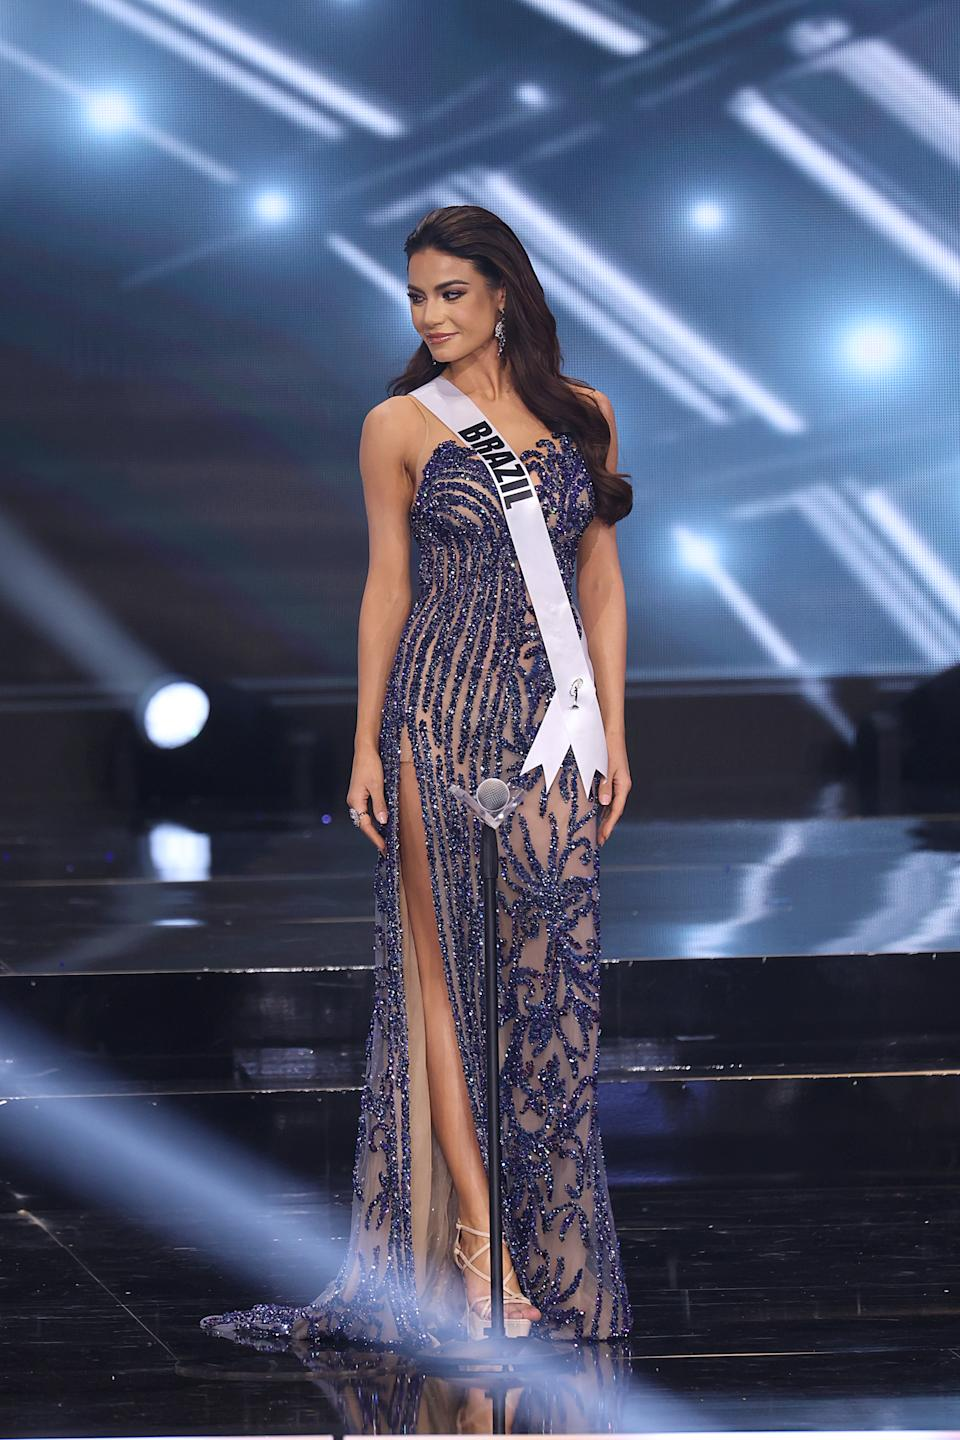 HOLLYWOOD, FLORIDA - MAY 16: Miss Universe Brazil Finalist Julia Gama appears onstage at the Miss Universe 2021 Pageant at Seminole Hard Rock Hotel & Casino on May 16, 2021 in Hollywood, Florida. (Photo by Rodrigo Varela/Getty Images)